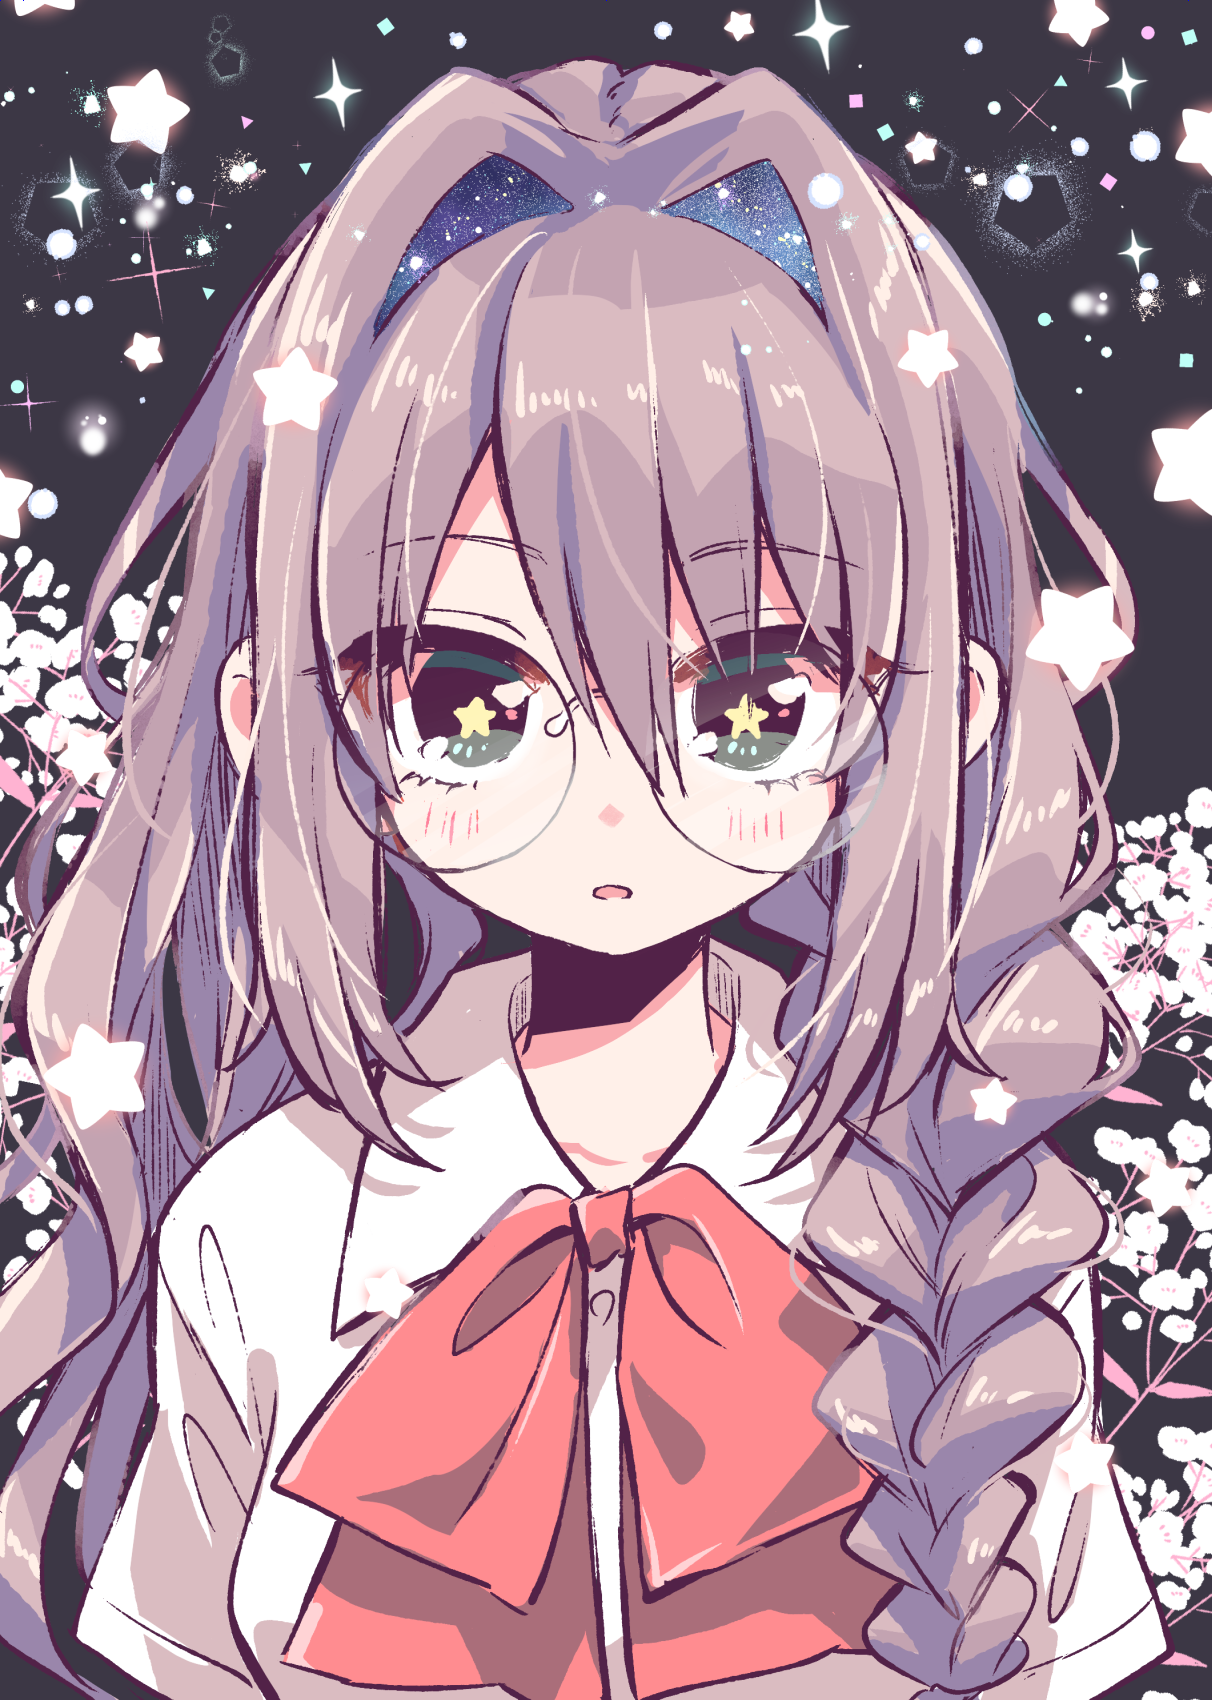 Cute Long Hair Anime Girl : anime, Anime, 1212x1700, Girls, Glasses, Drawings,, Kawaii, Beautiful